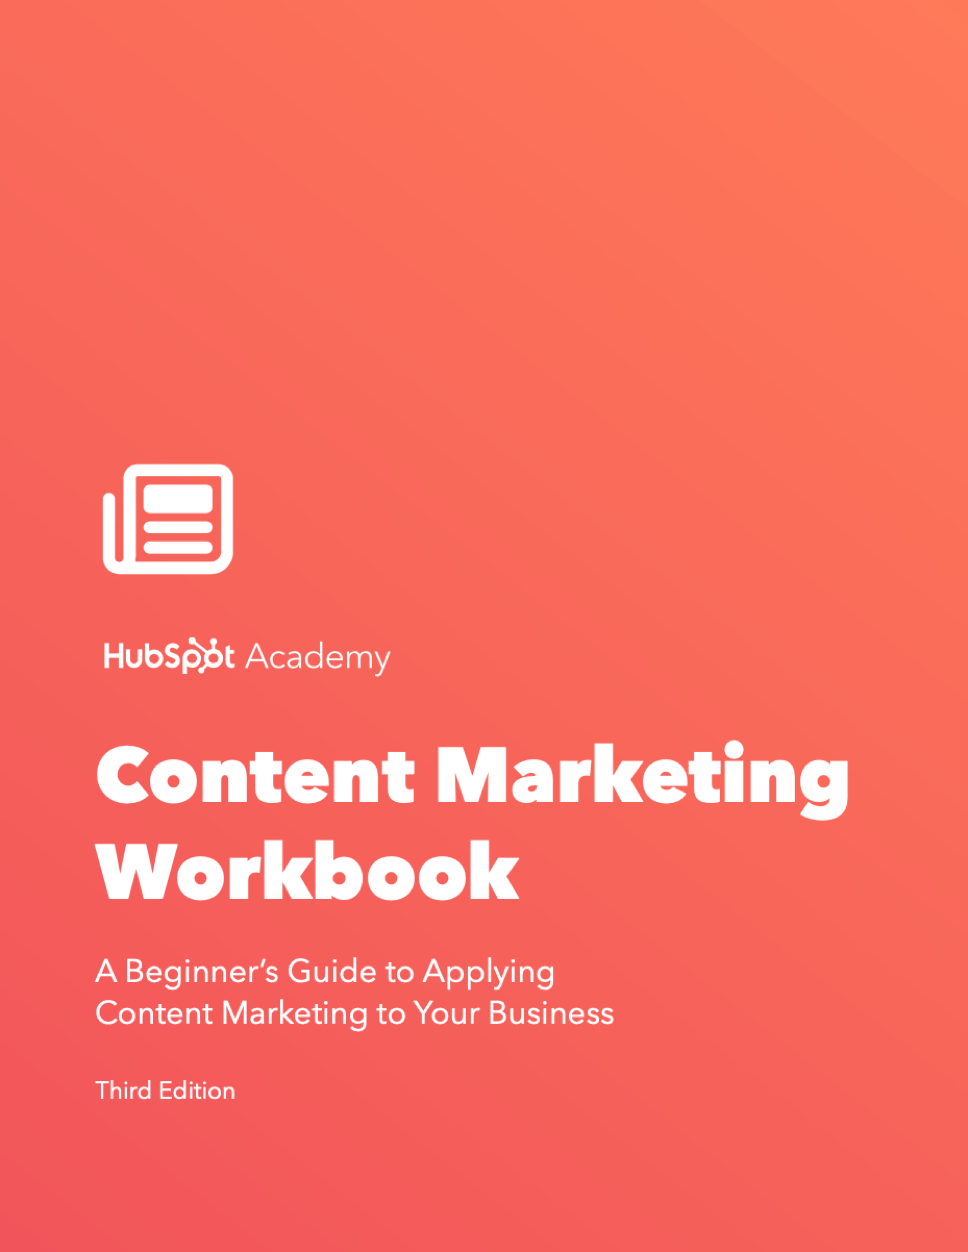 Content Marketing Workbook by HubSpot at Social-Media.press